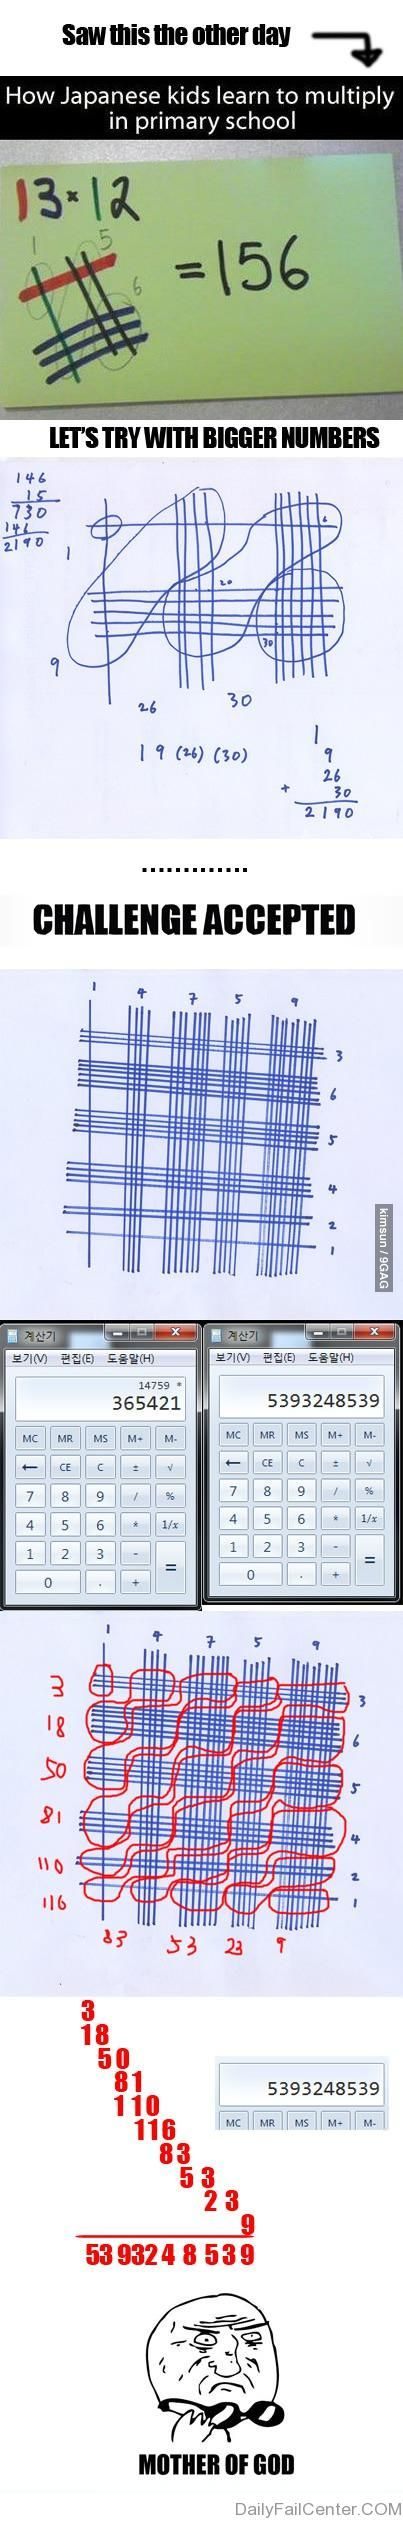 Japanese Math. My husband just showed me this last week!